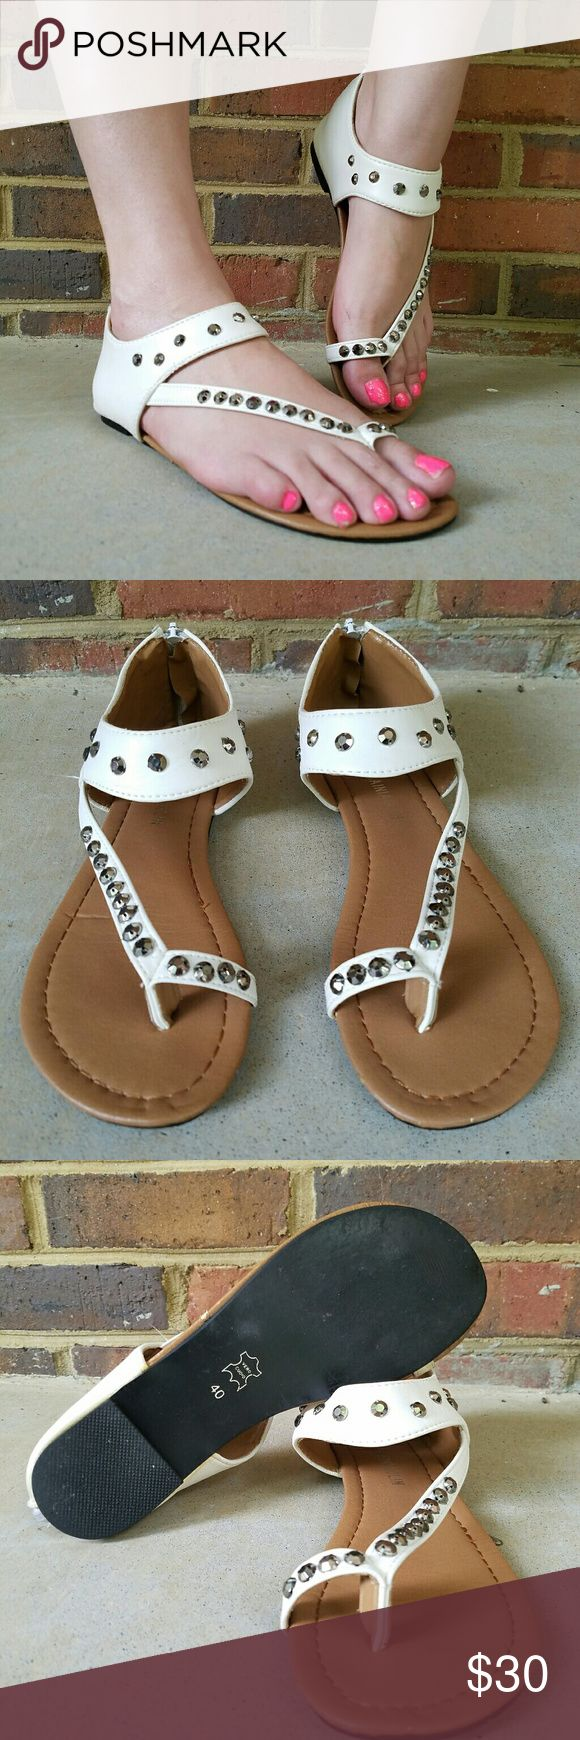 Leather gladiator sandal with metal studs stamped vero cuoio (signifies real Italian leather) gladiator sandals are incredibly comfortable and stylish. White leather with toe detail and silver/grey studs in fabulous condition. They zip up in the back so they are easy to put on and off, and the leather is soft so they are comfortable to wear. They are a Euro size 40, but fit a 9 to 9.5 in women's Stitching, zippers, studs, soles, and lining all in great condition. Minor wear on sole. These…